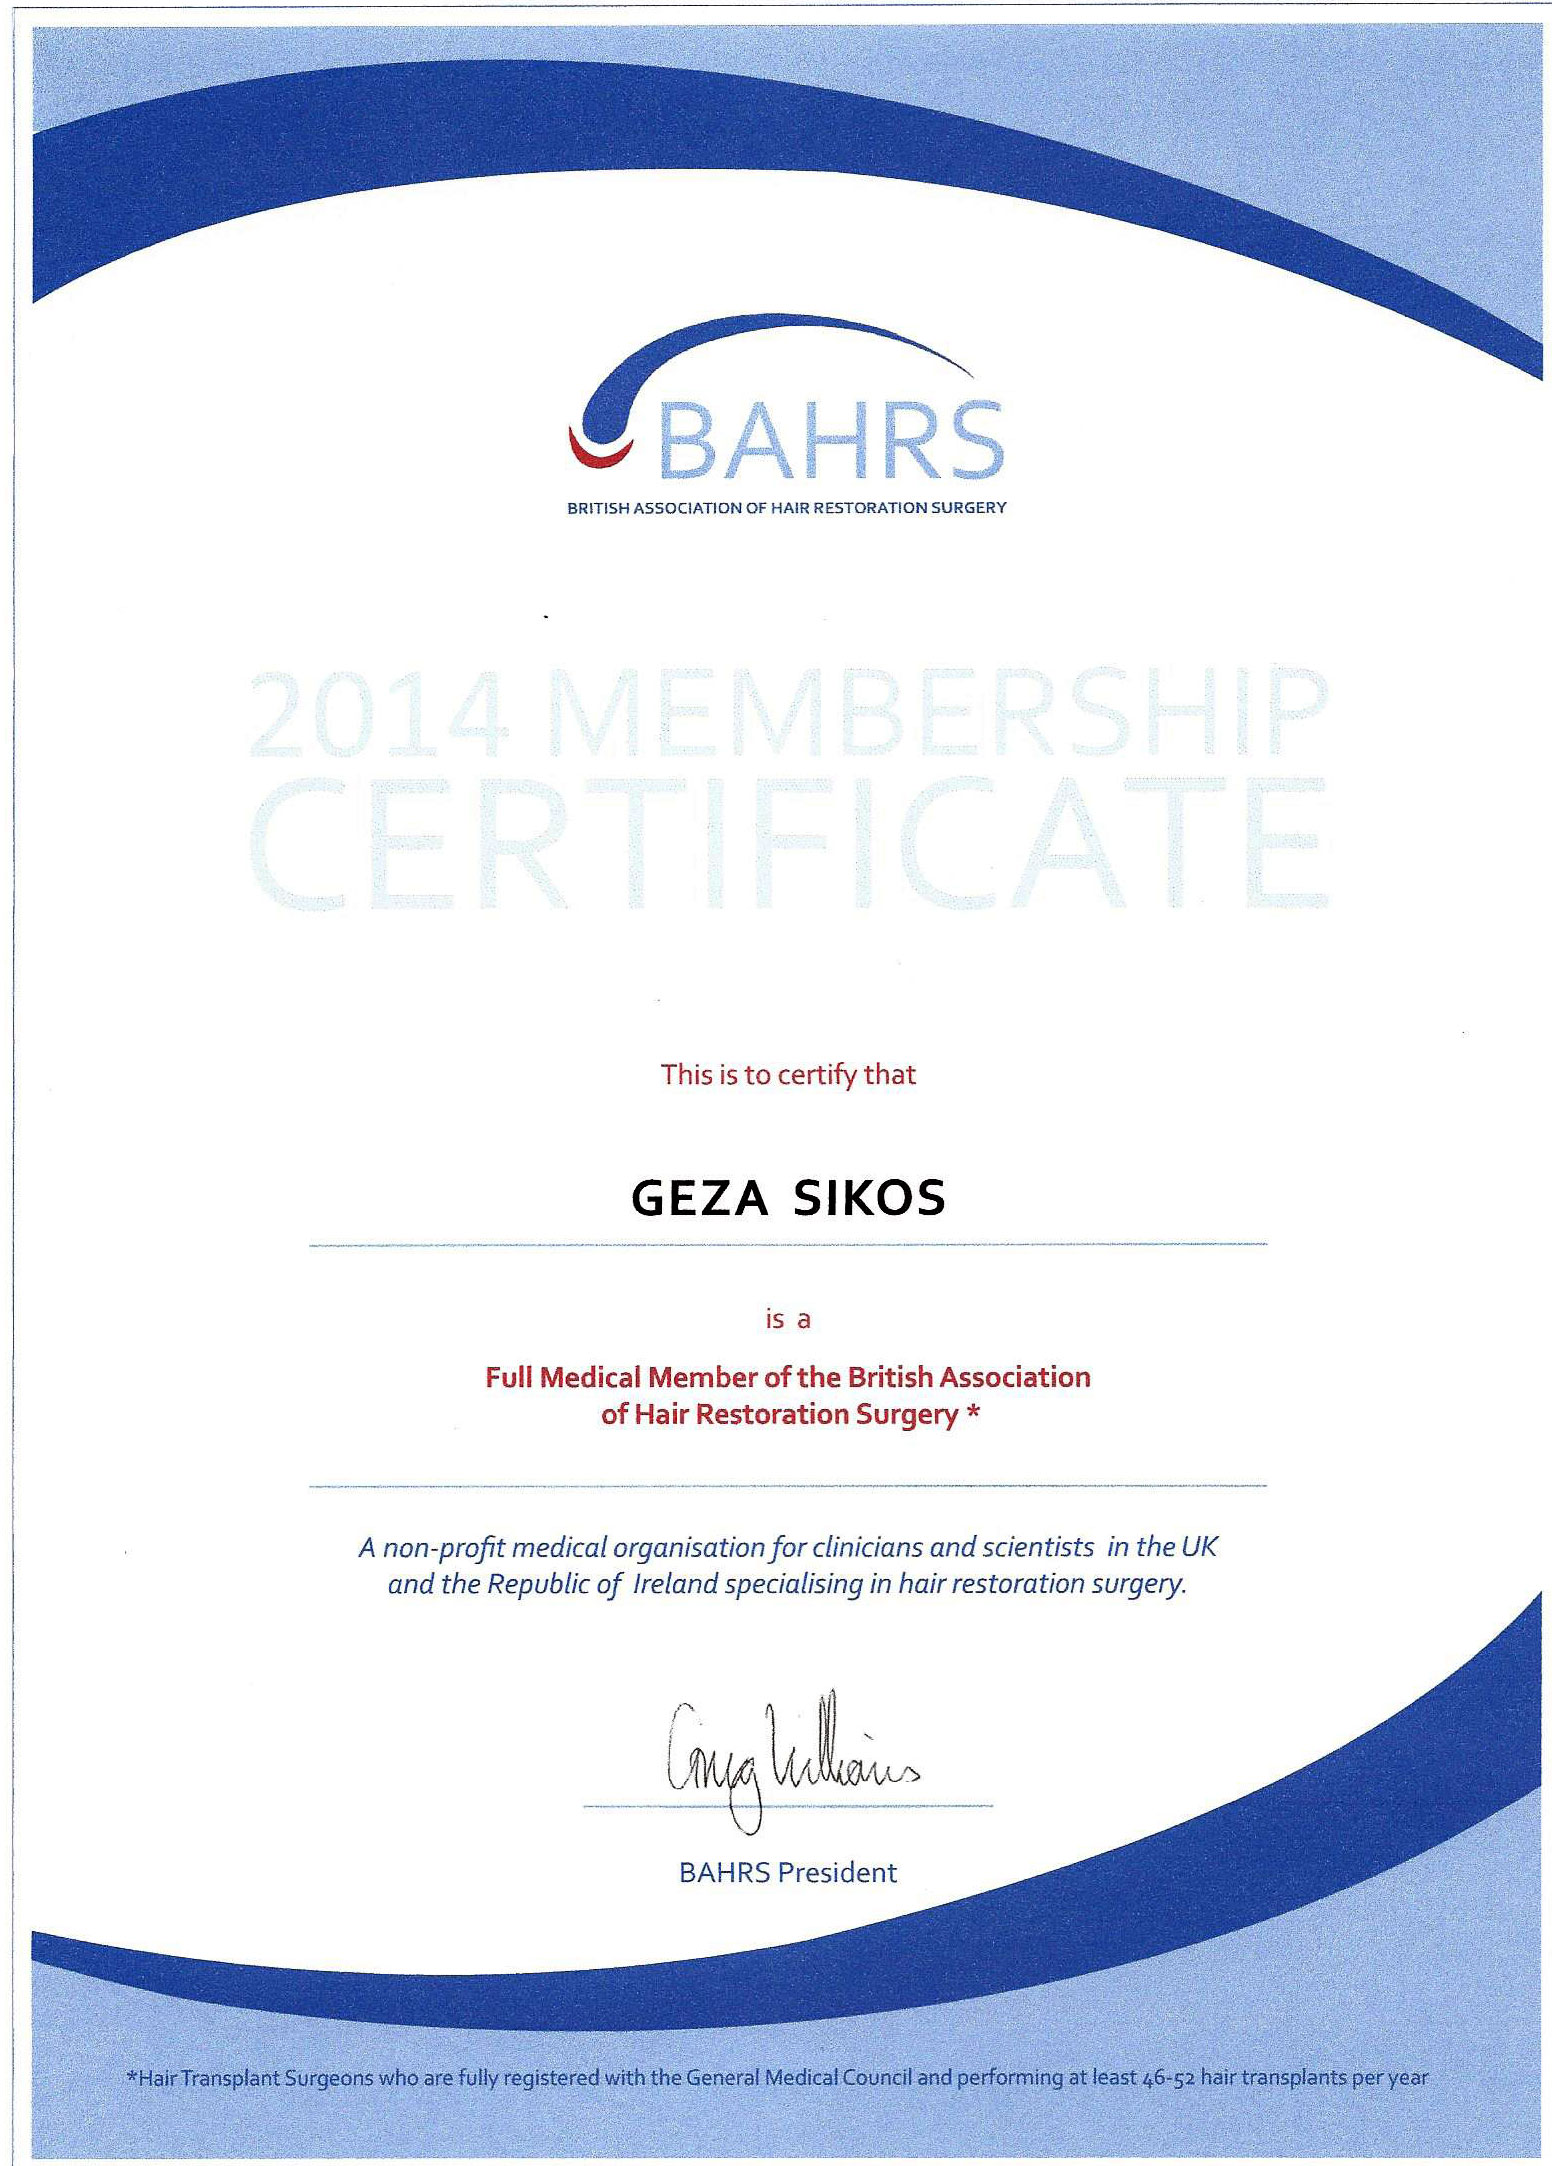 https://bahrs.co.uk/profile-view.php?id=52